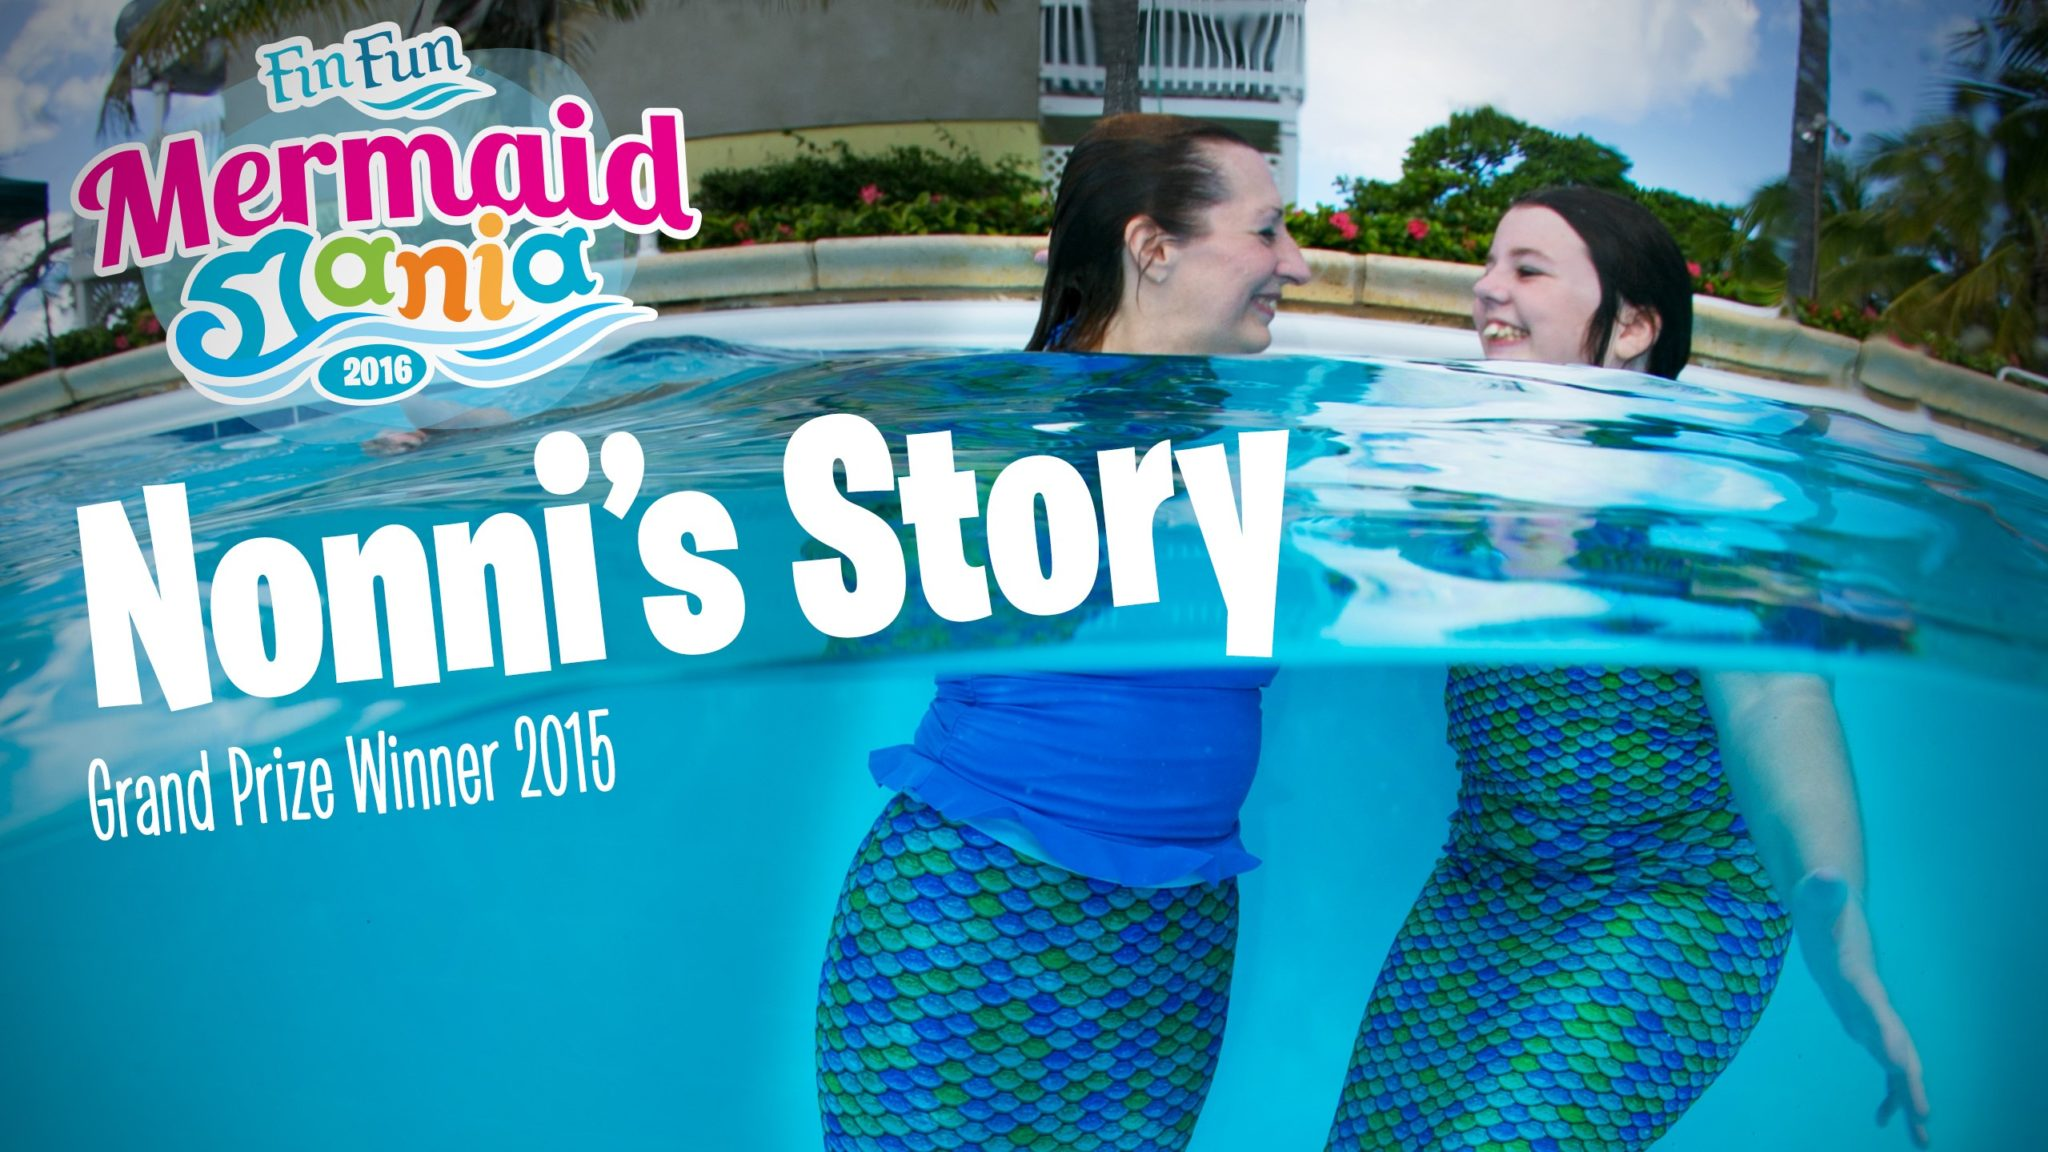 Mermaid Mania 2015 Grand Prize Winner Video: Nonni's Story